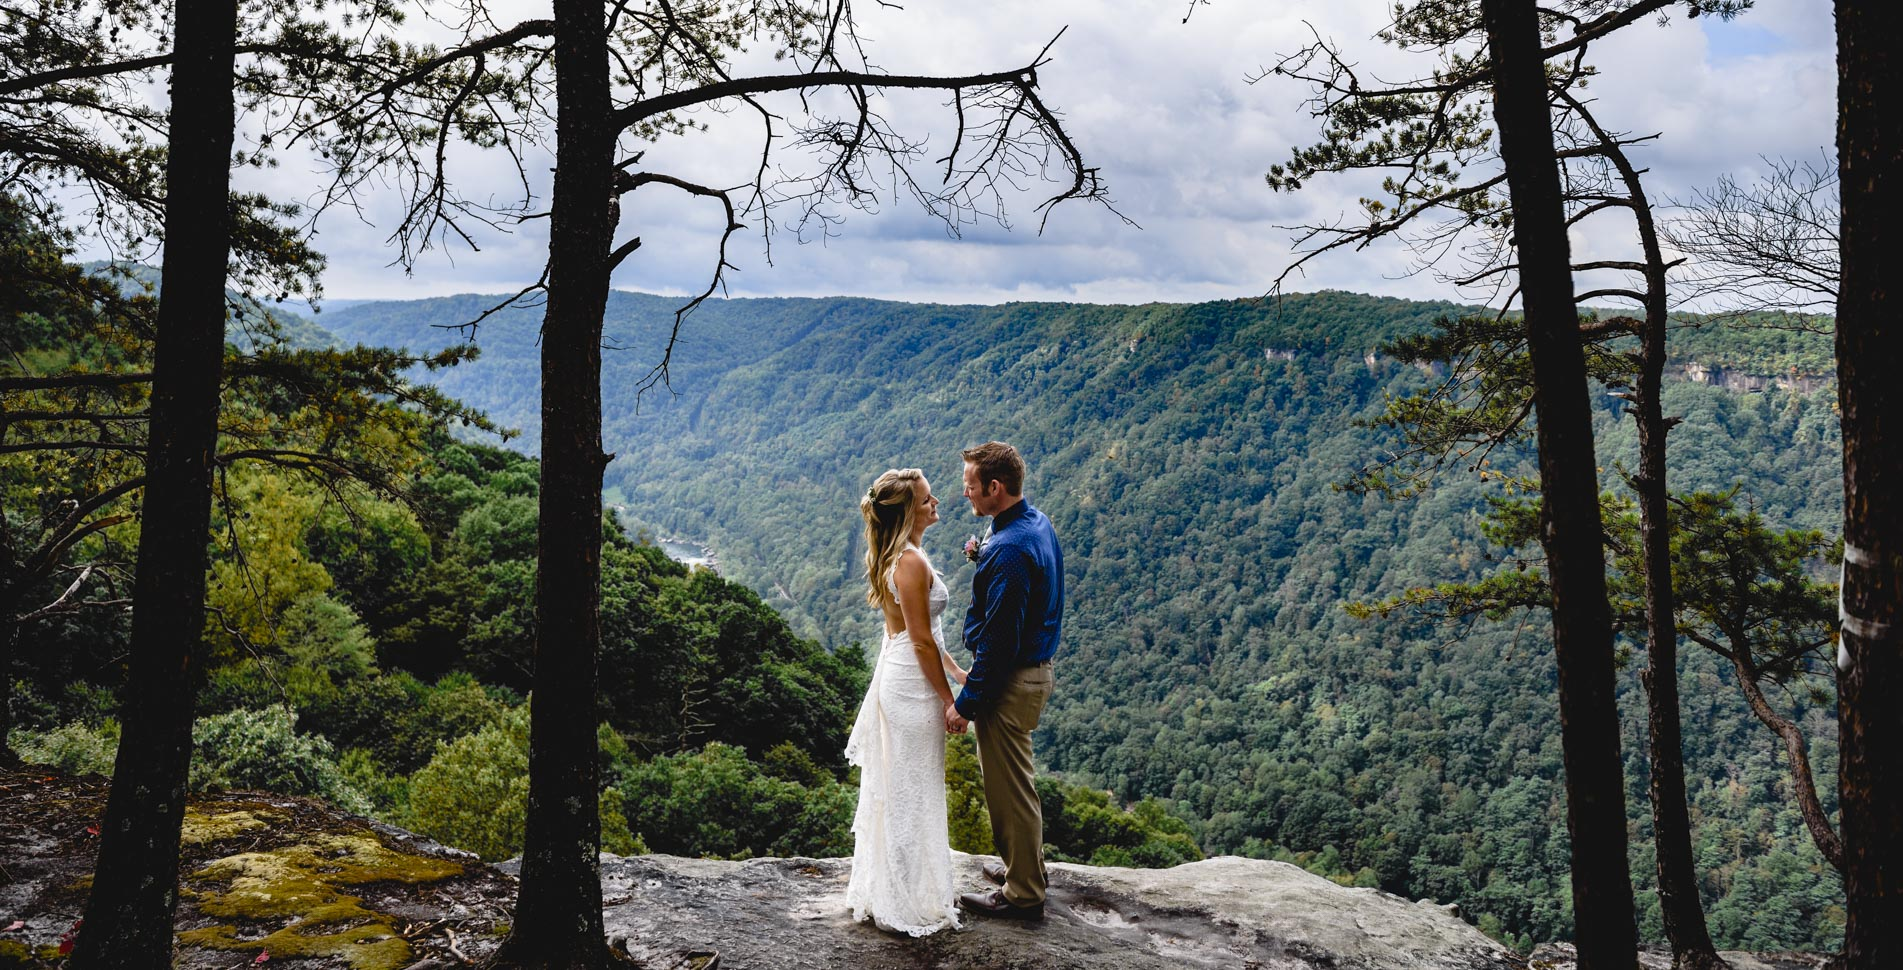 New River Gorge Elopement | Stephanie & Matt